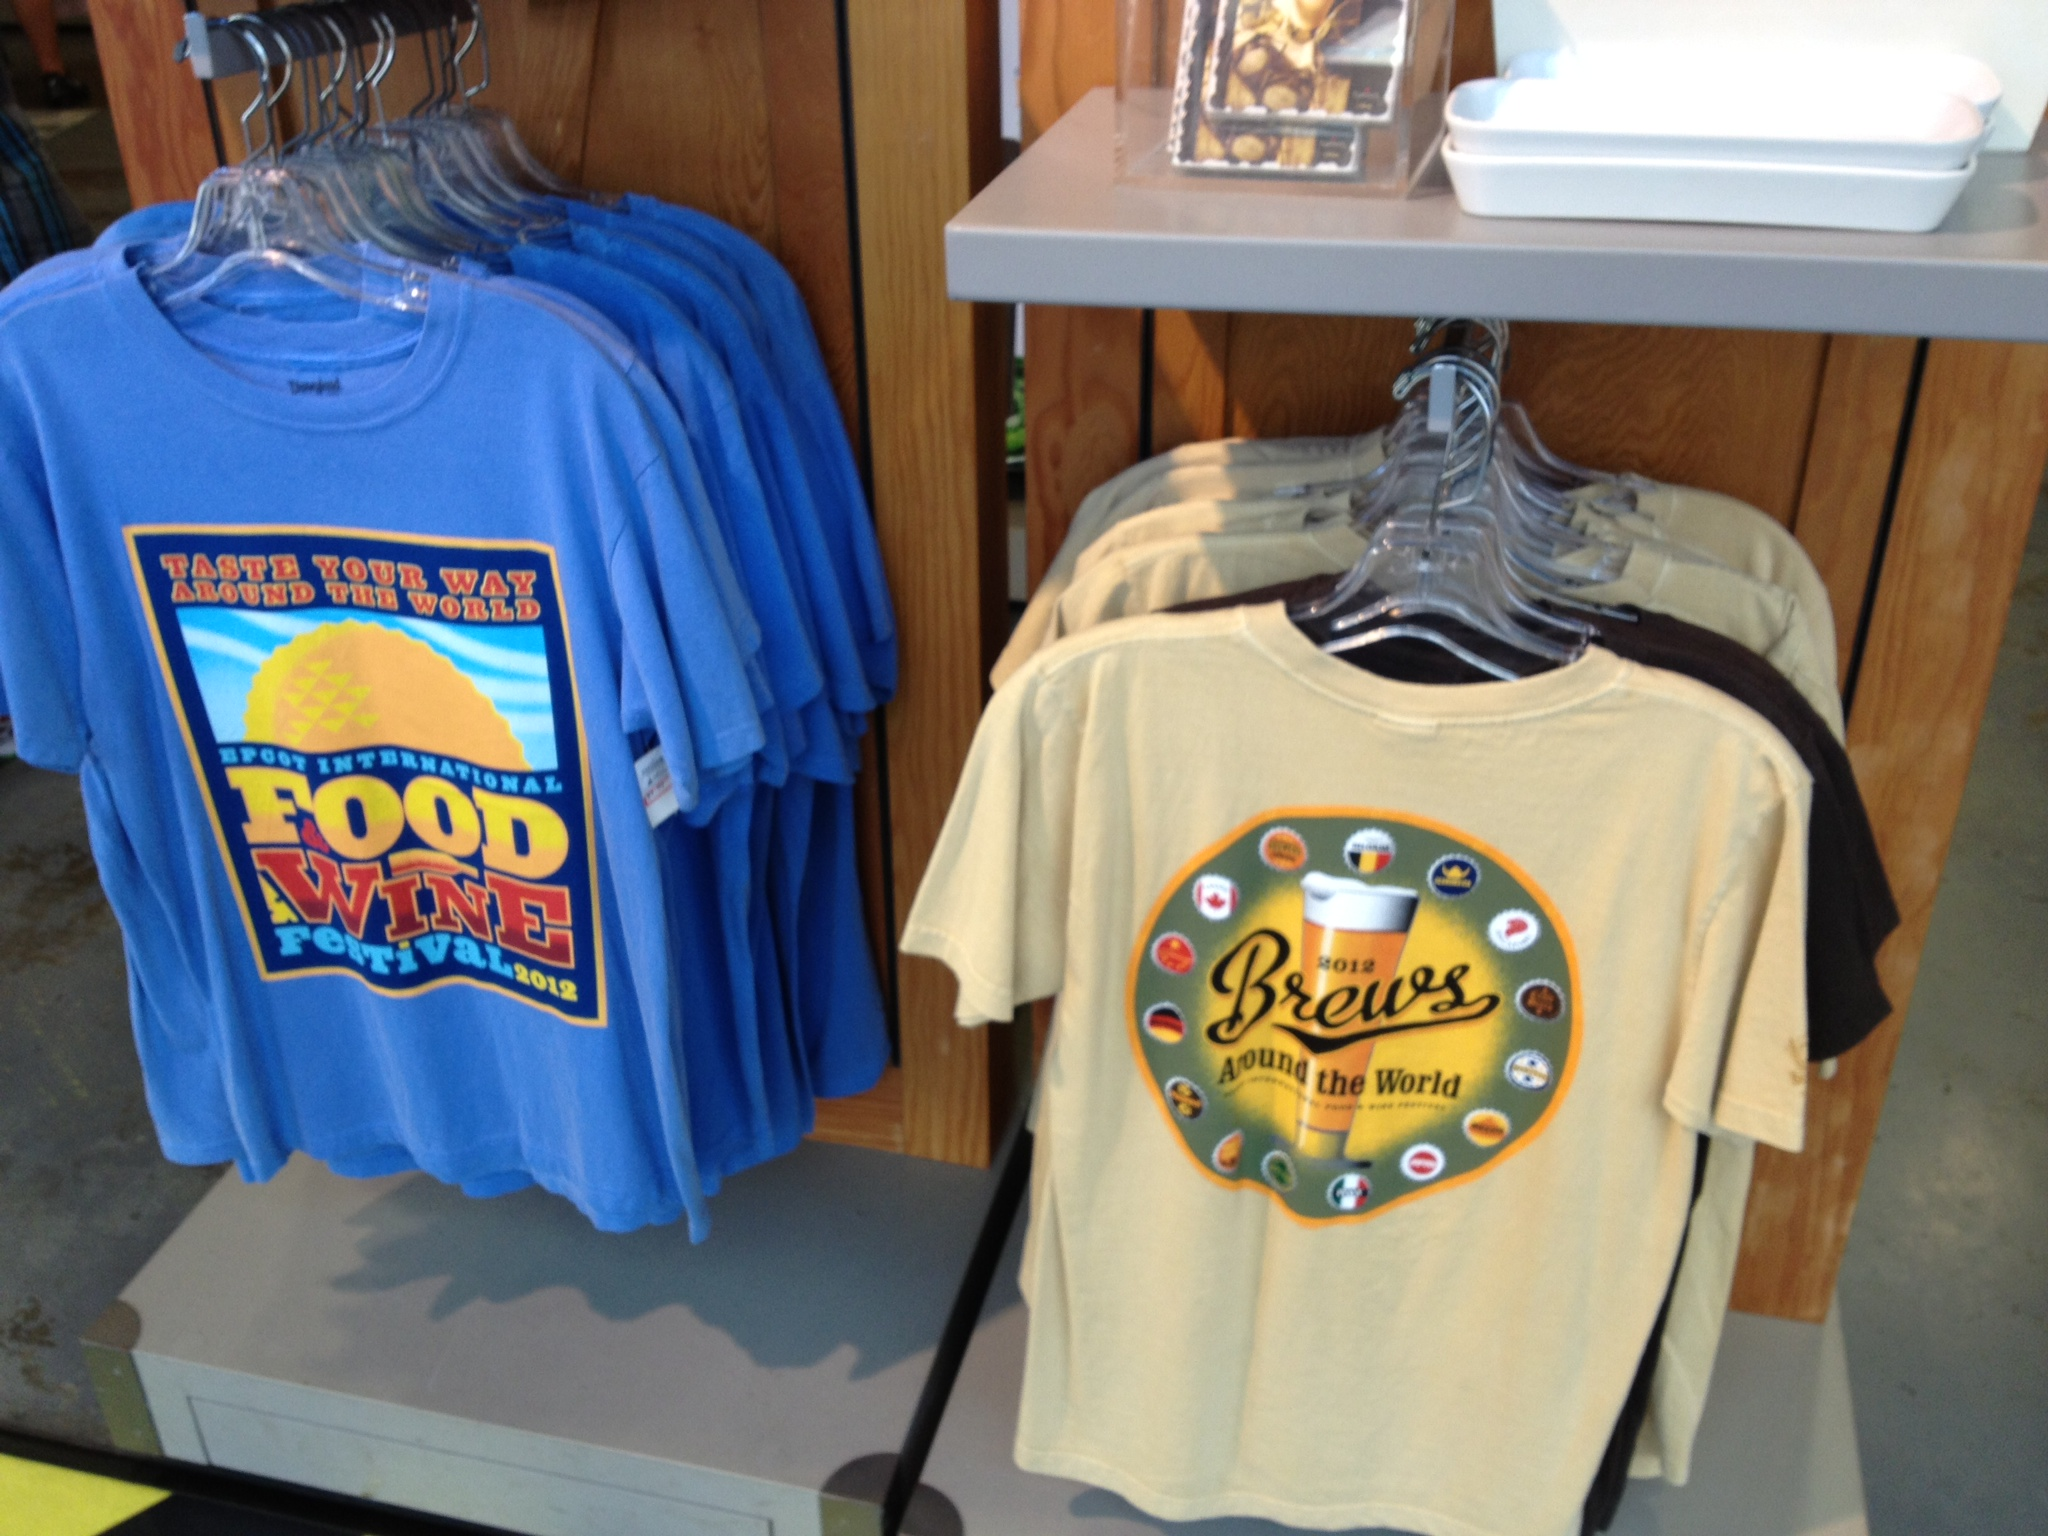 2012 Food & Wine shirts